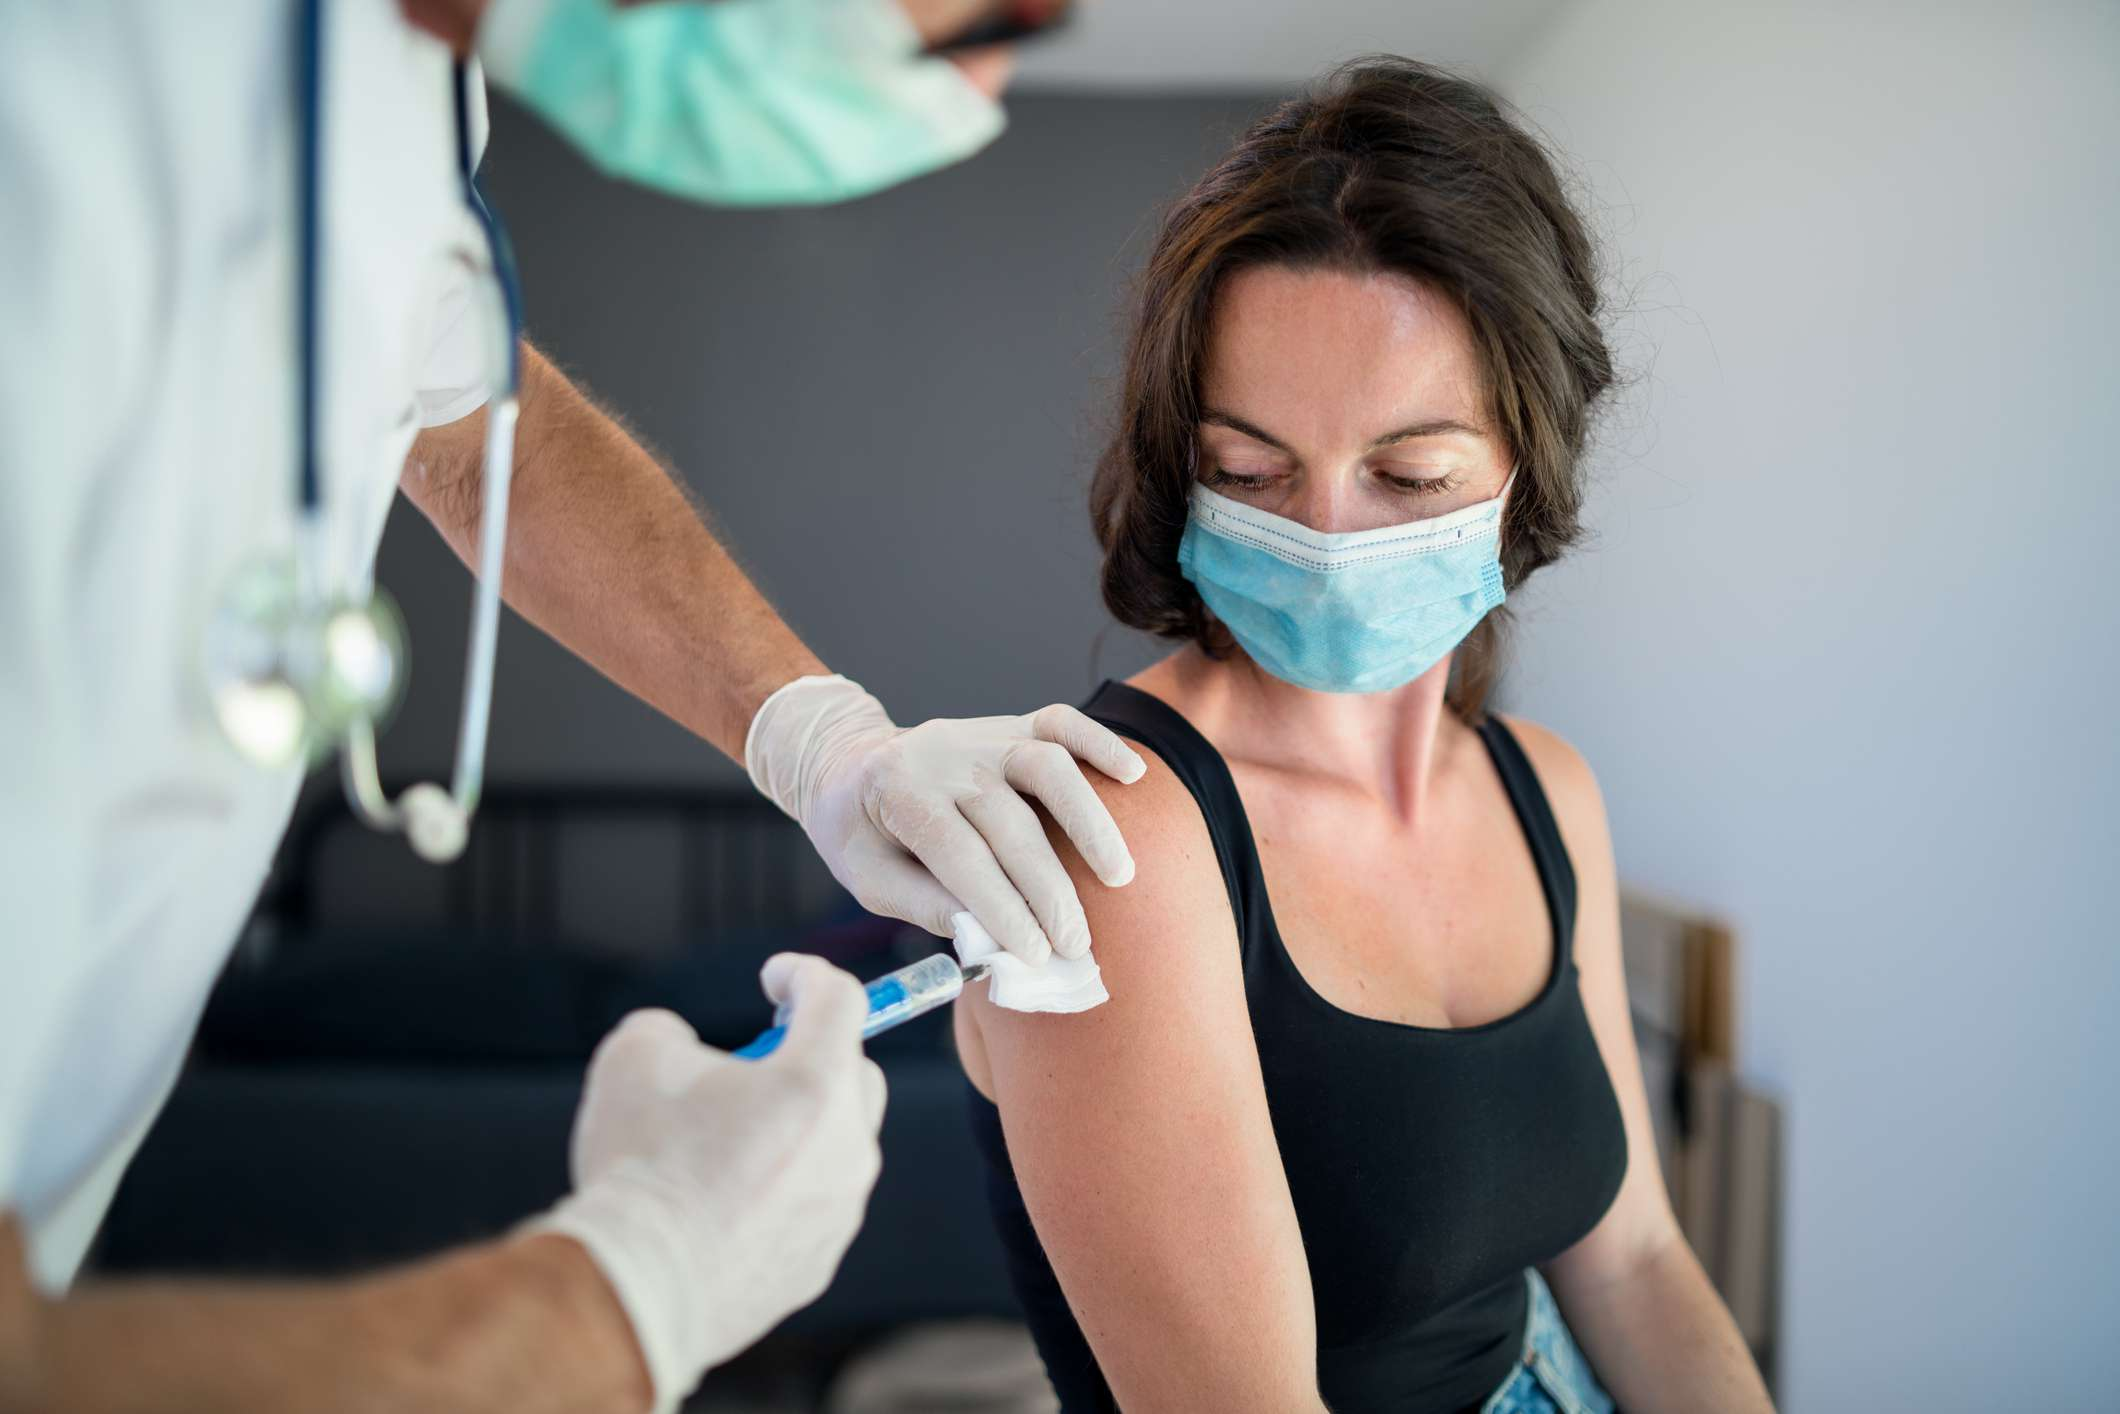 Masked woman getting COVID-19 vaccine